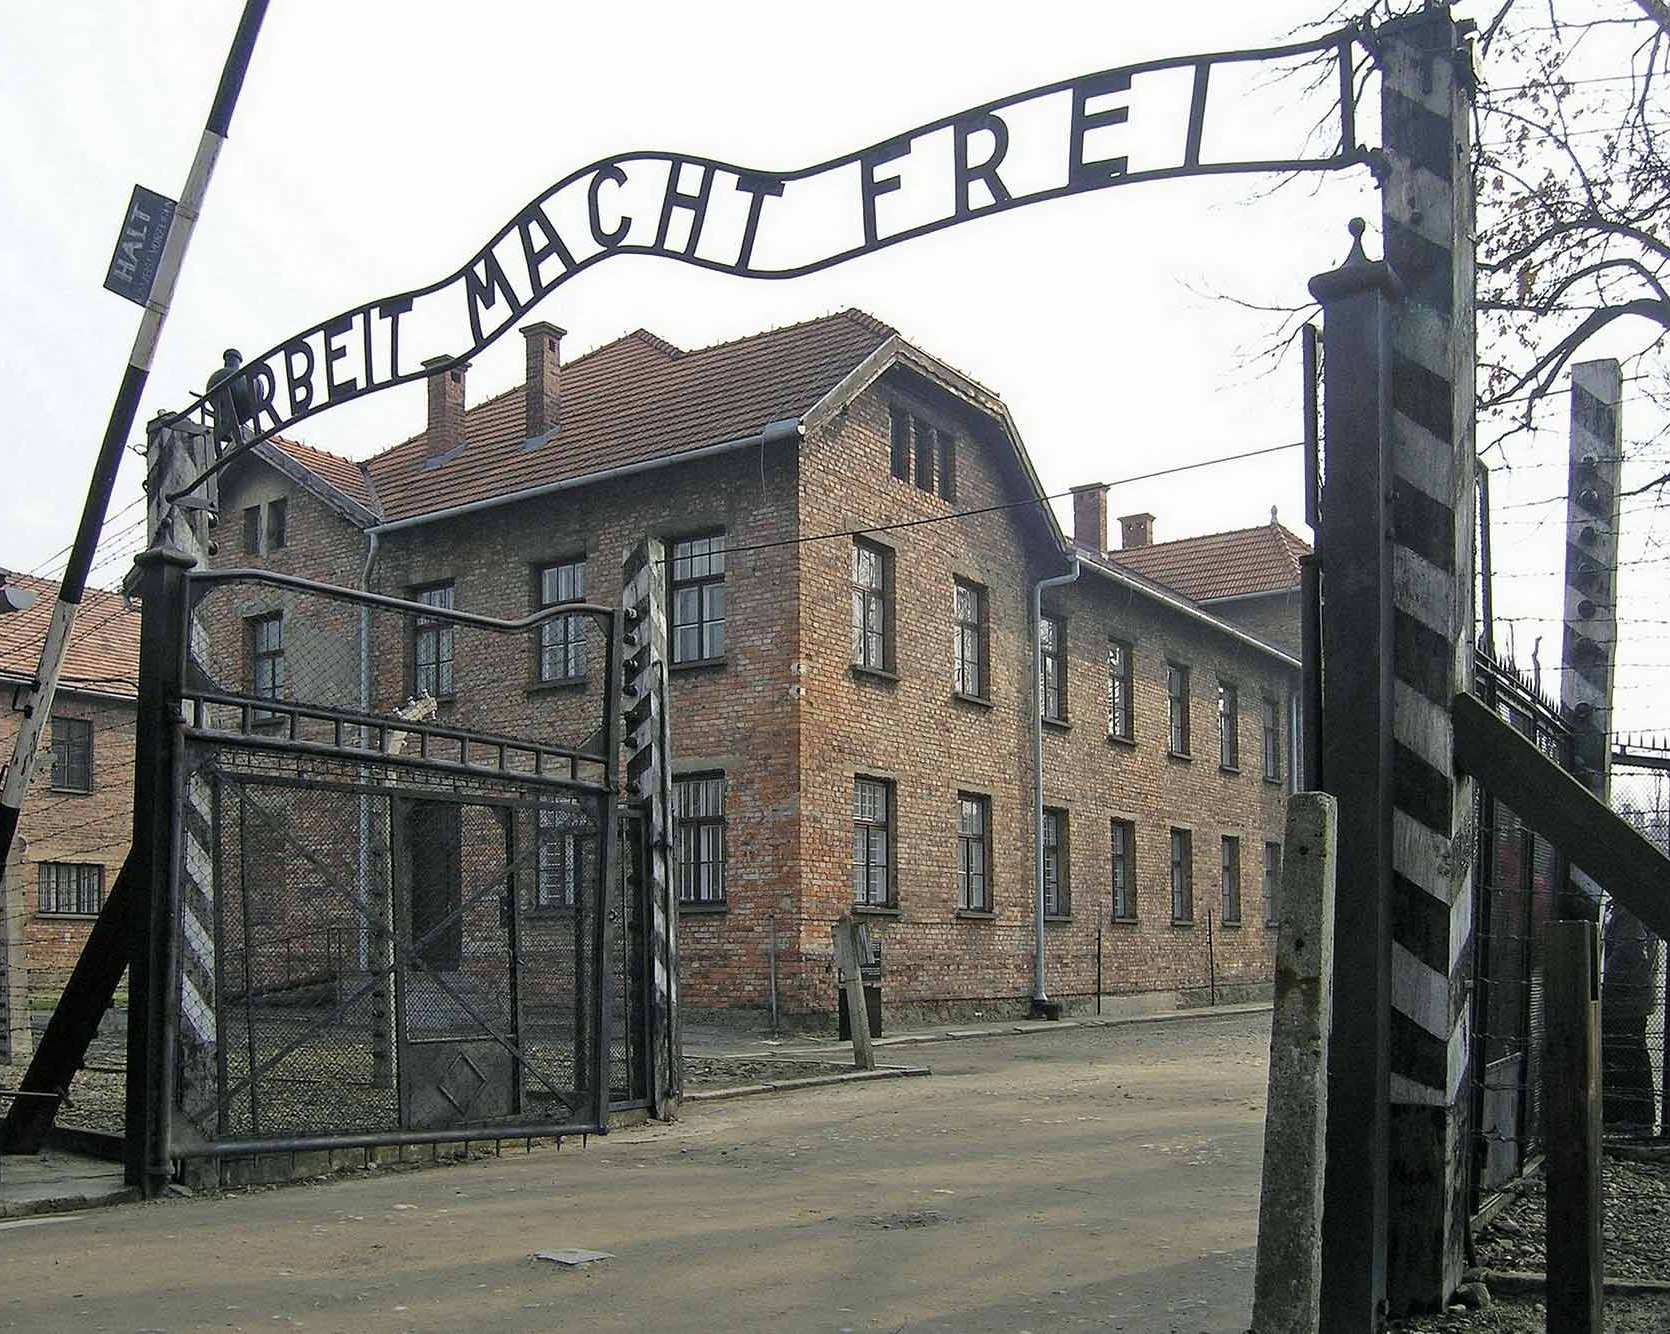 Remembering the Holocaust can help prevent genocide